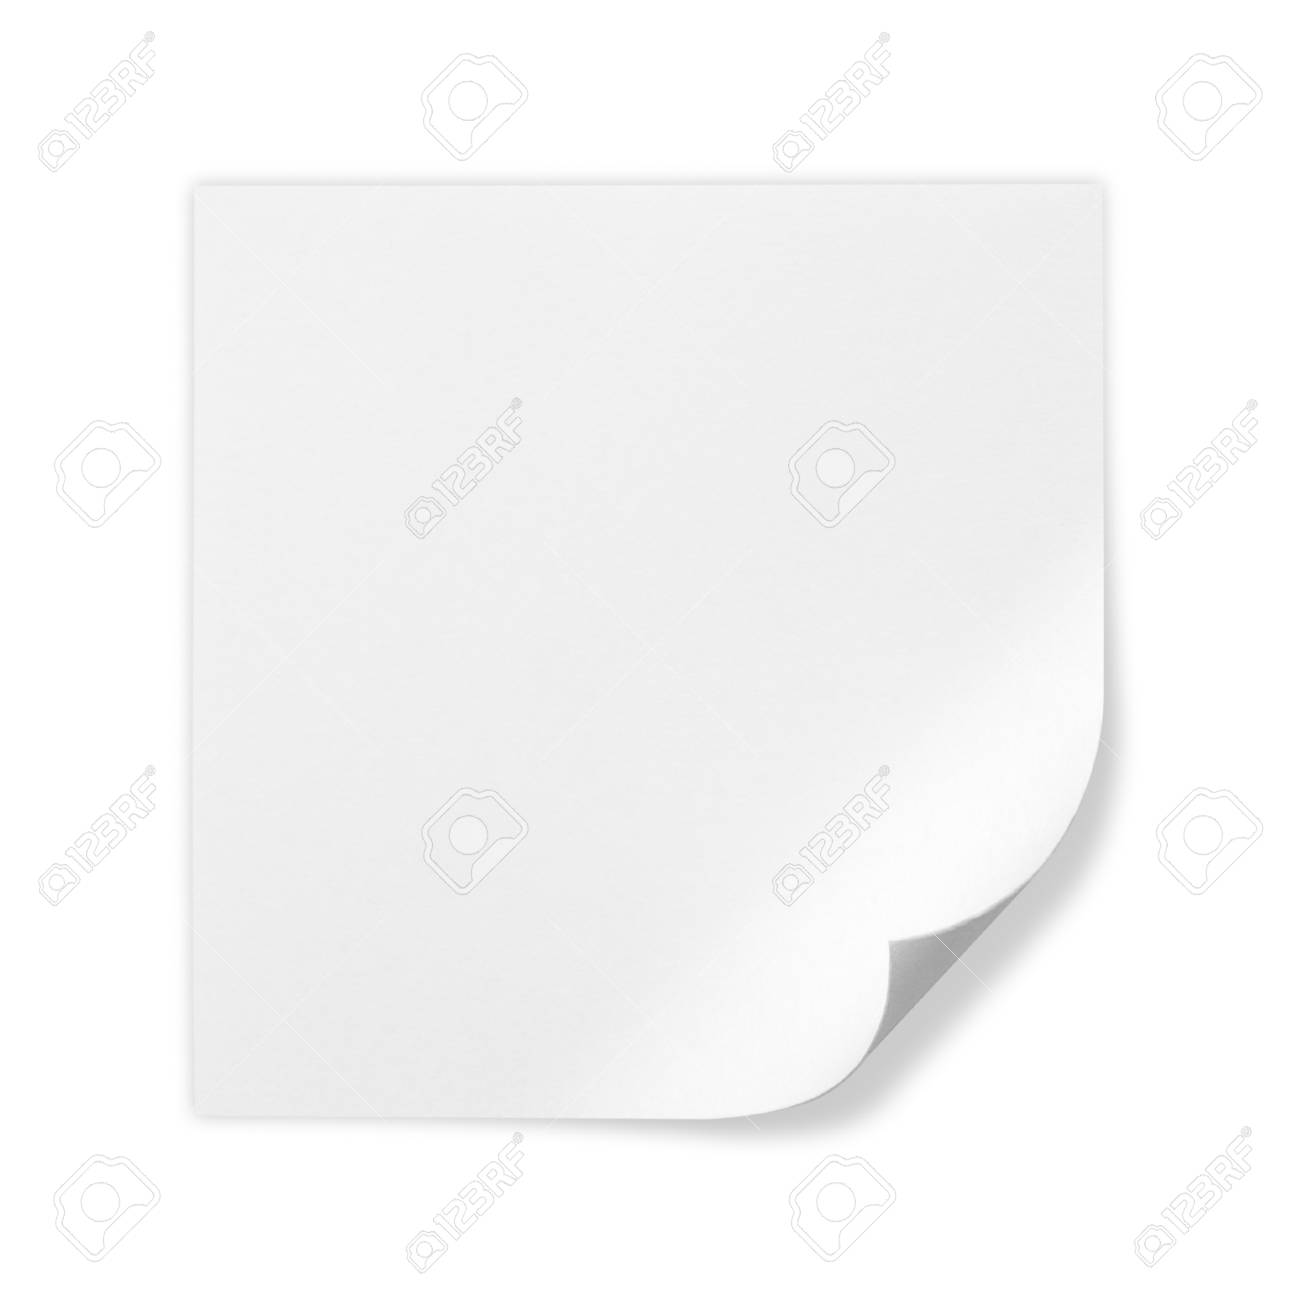 Bright White Paper Blank On White Background Stock Photo Picture And Royalty Free Image Image 28579815